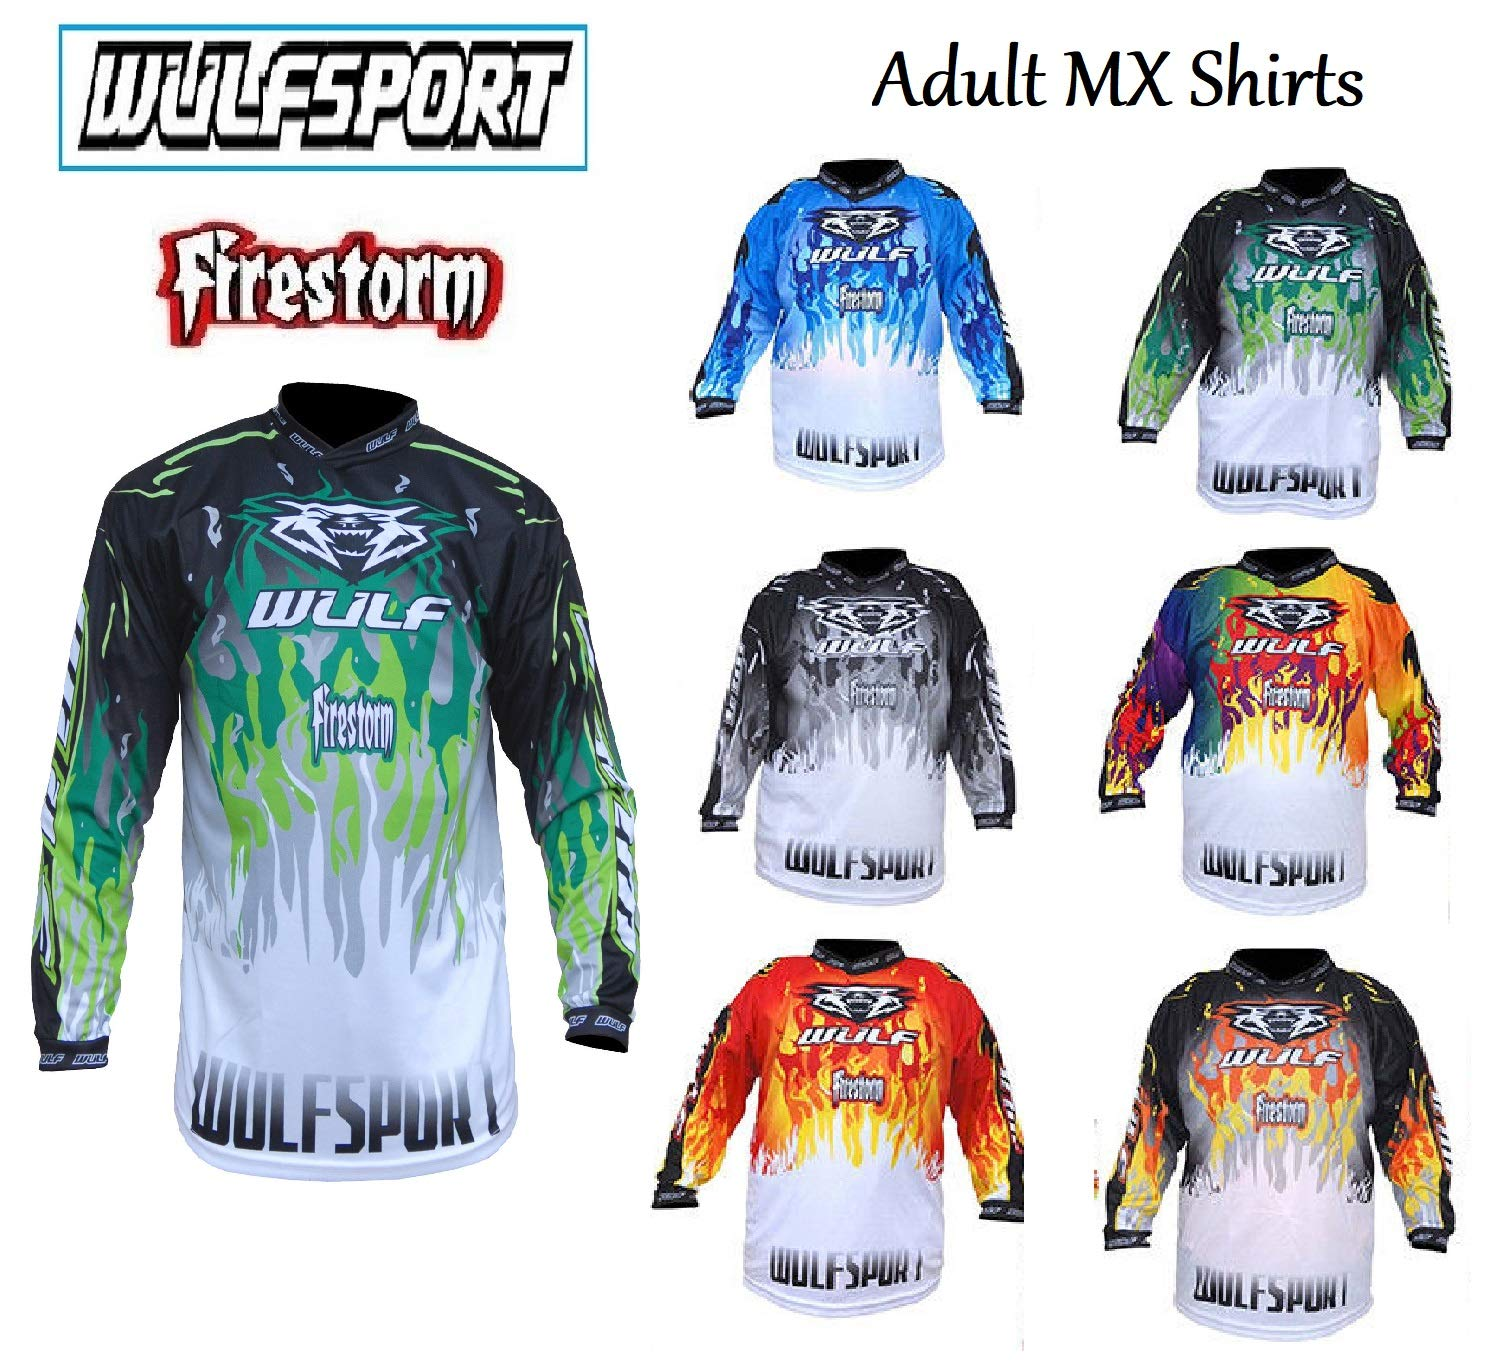 WULFSPORT ADULT FIRESTORM SHIRTS NEW 2018 Motorbike Motocross Quad Enduro MTB Off Road ATV MX Pit Sport Jersey Shirt